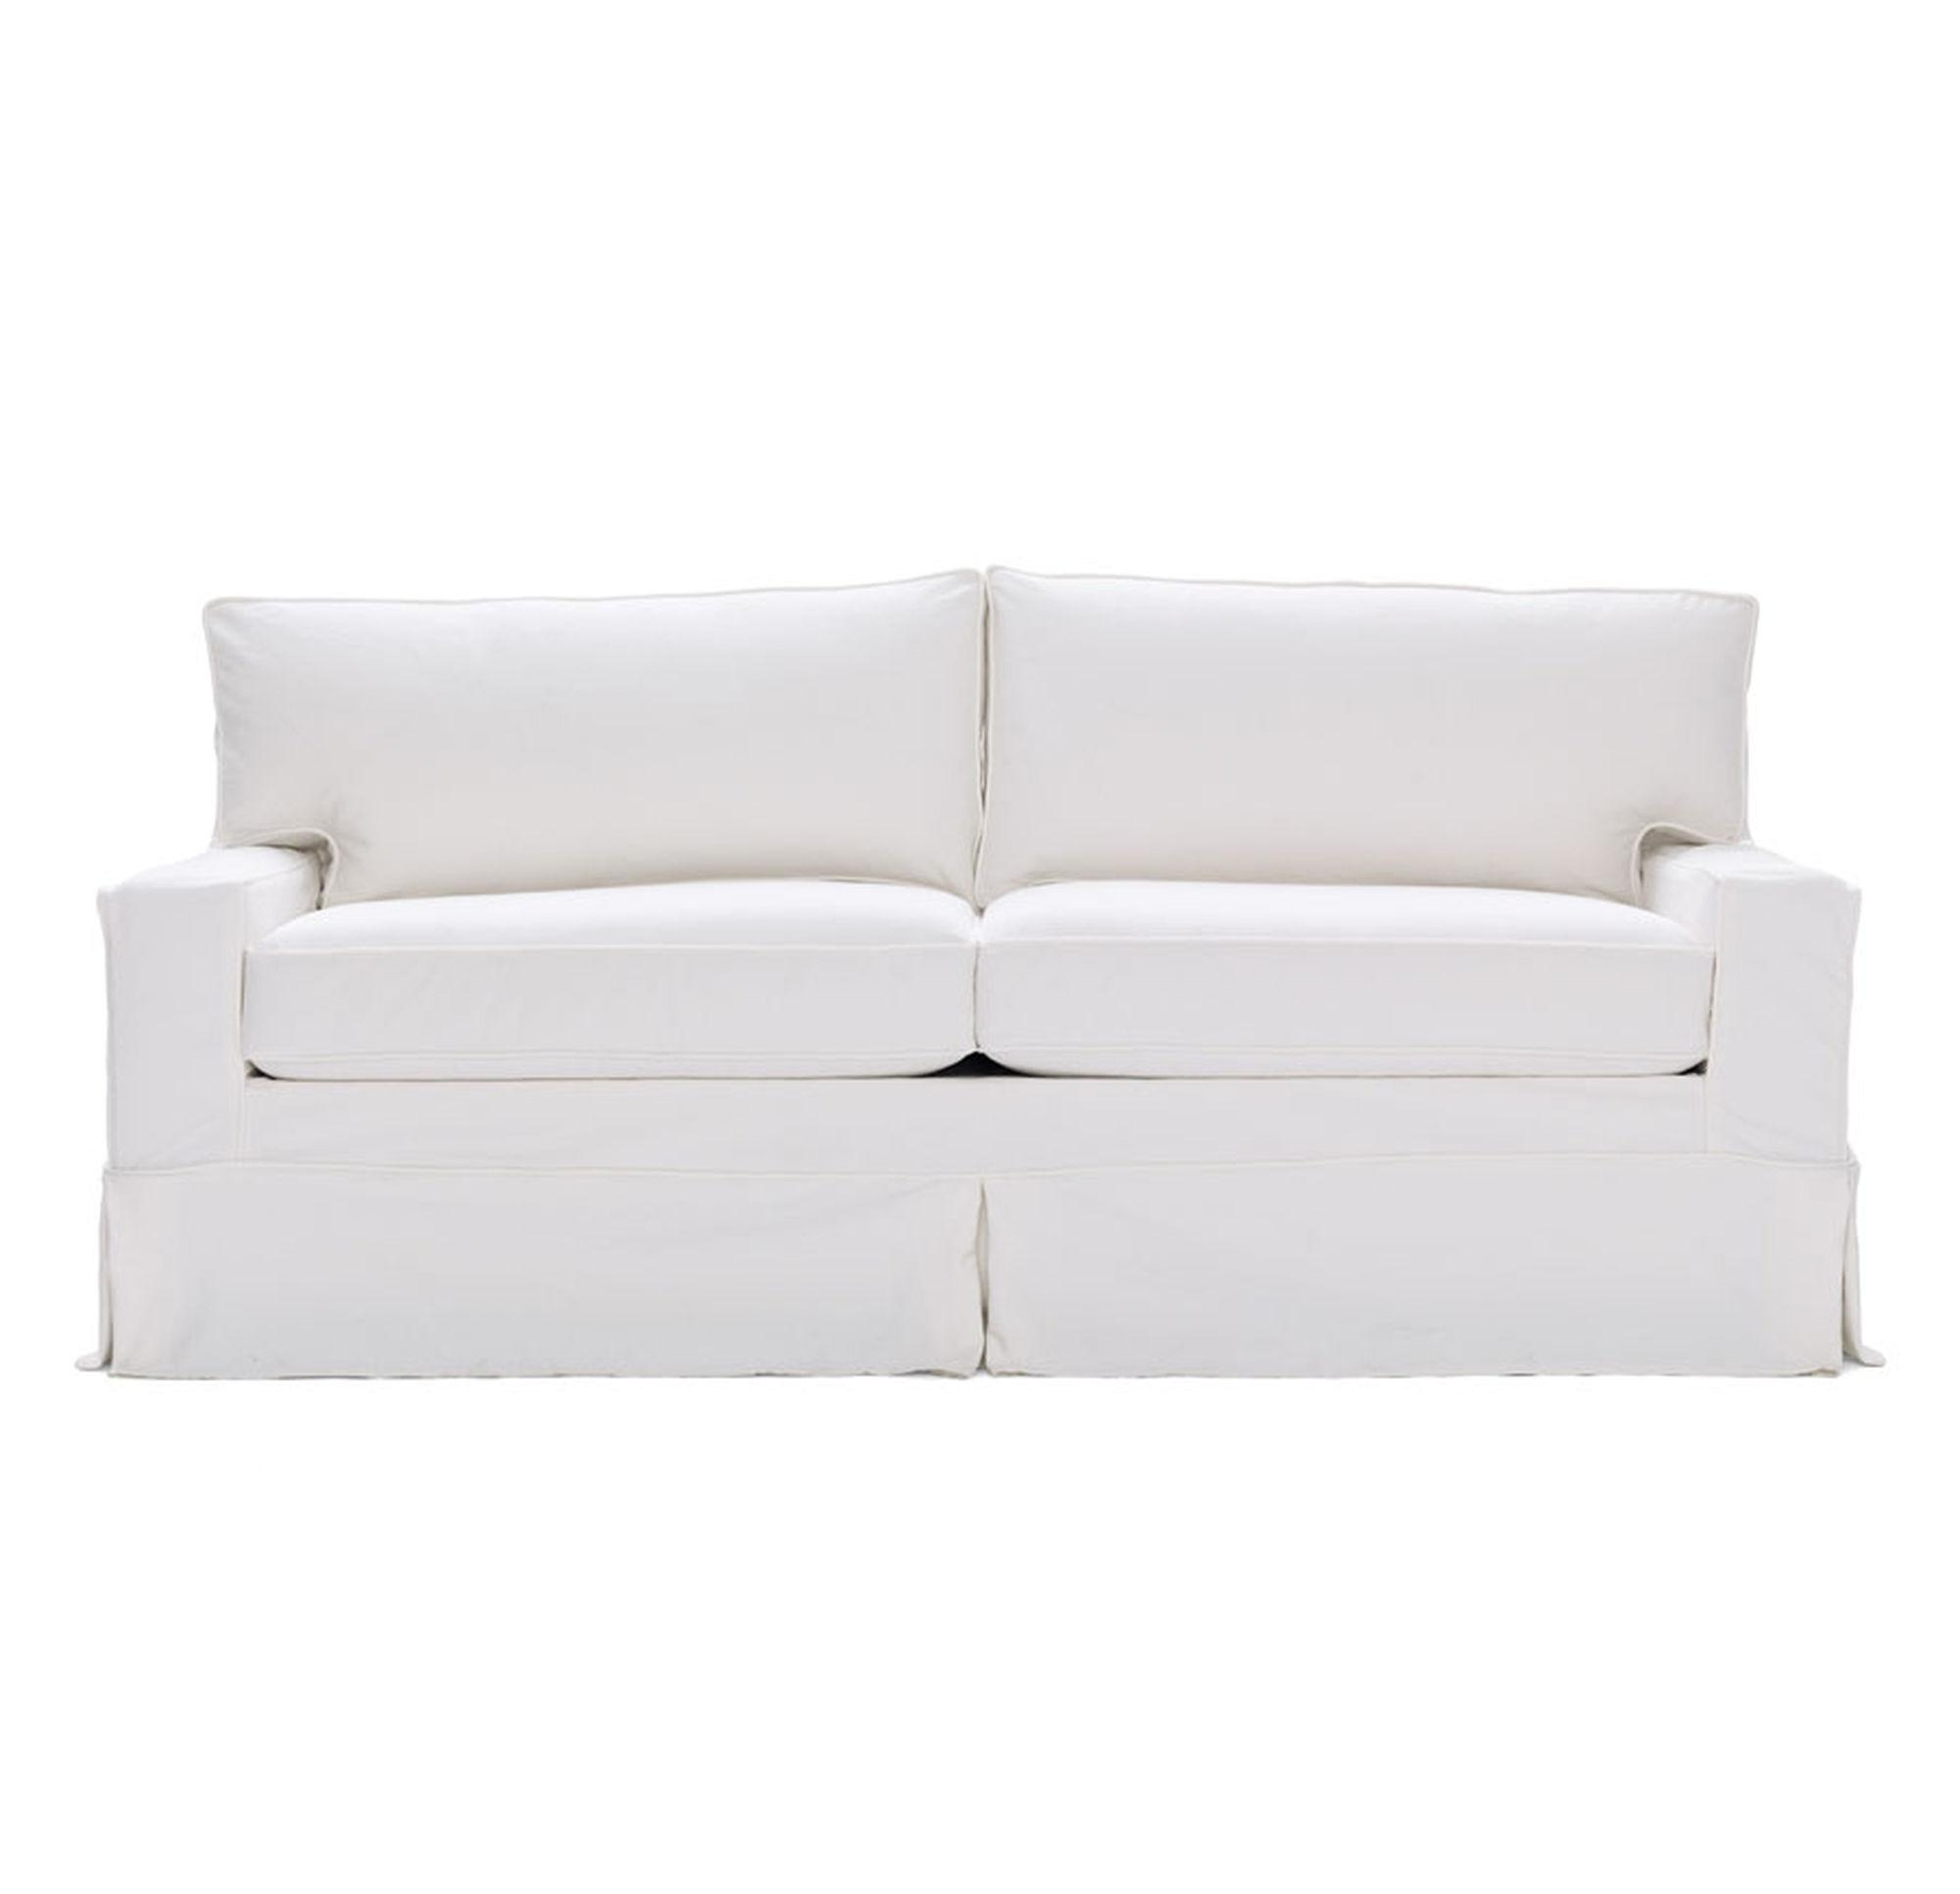 Queen Size Sleeper Sofa Slipcover | Tehranmix Decoration regarding Slipcovers for Sleeper Sofas